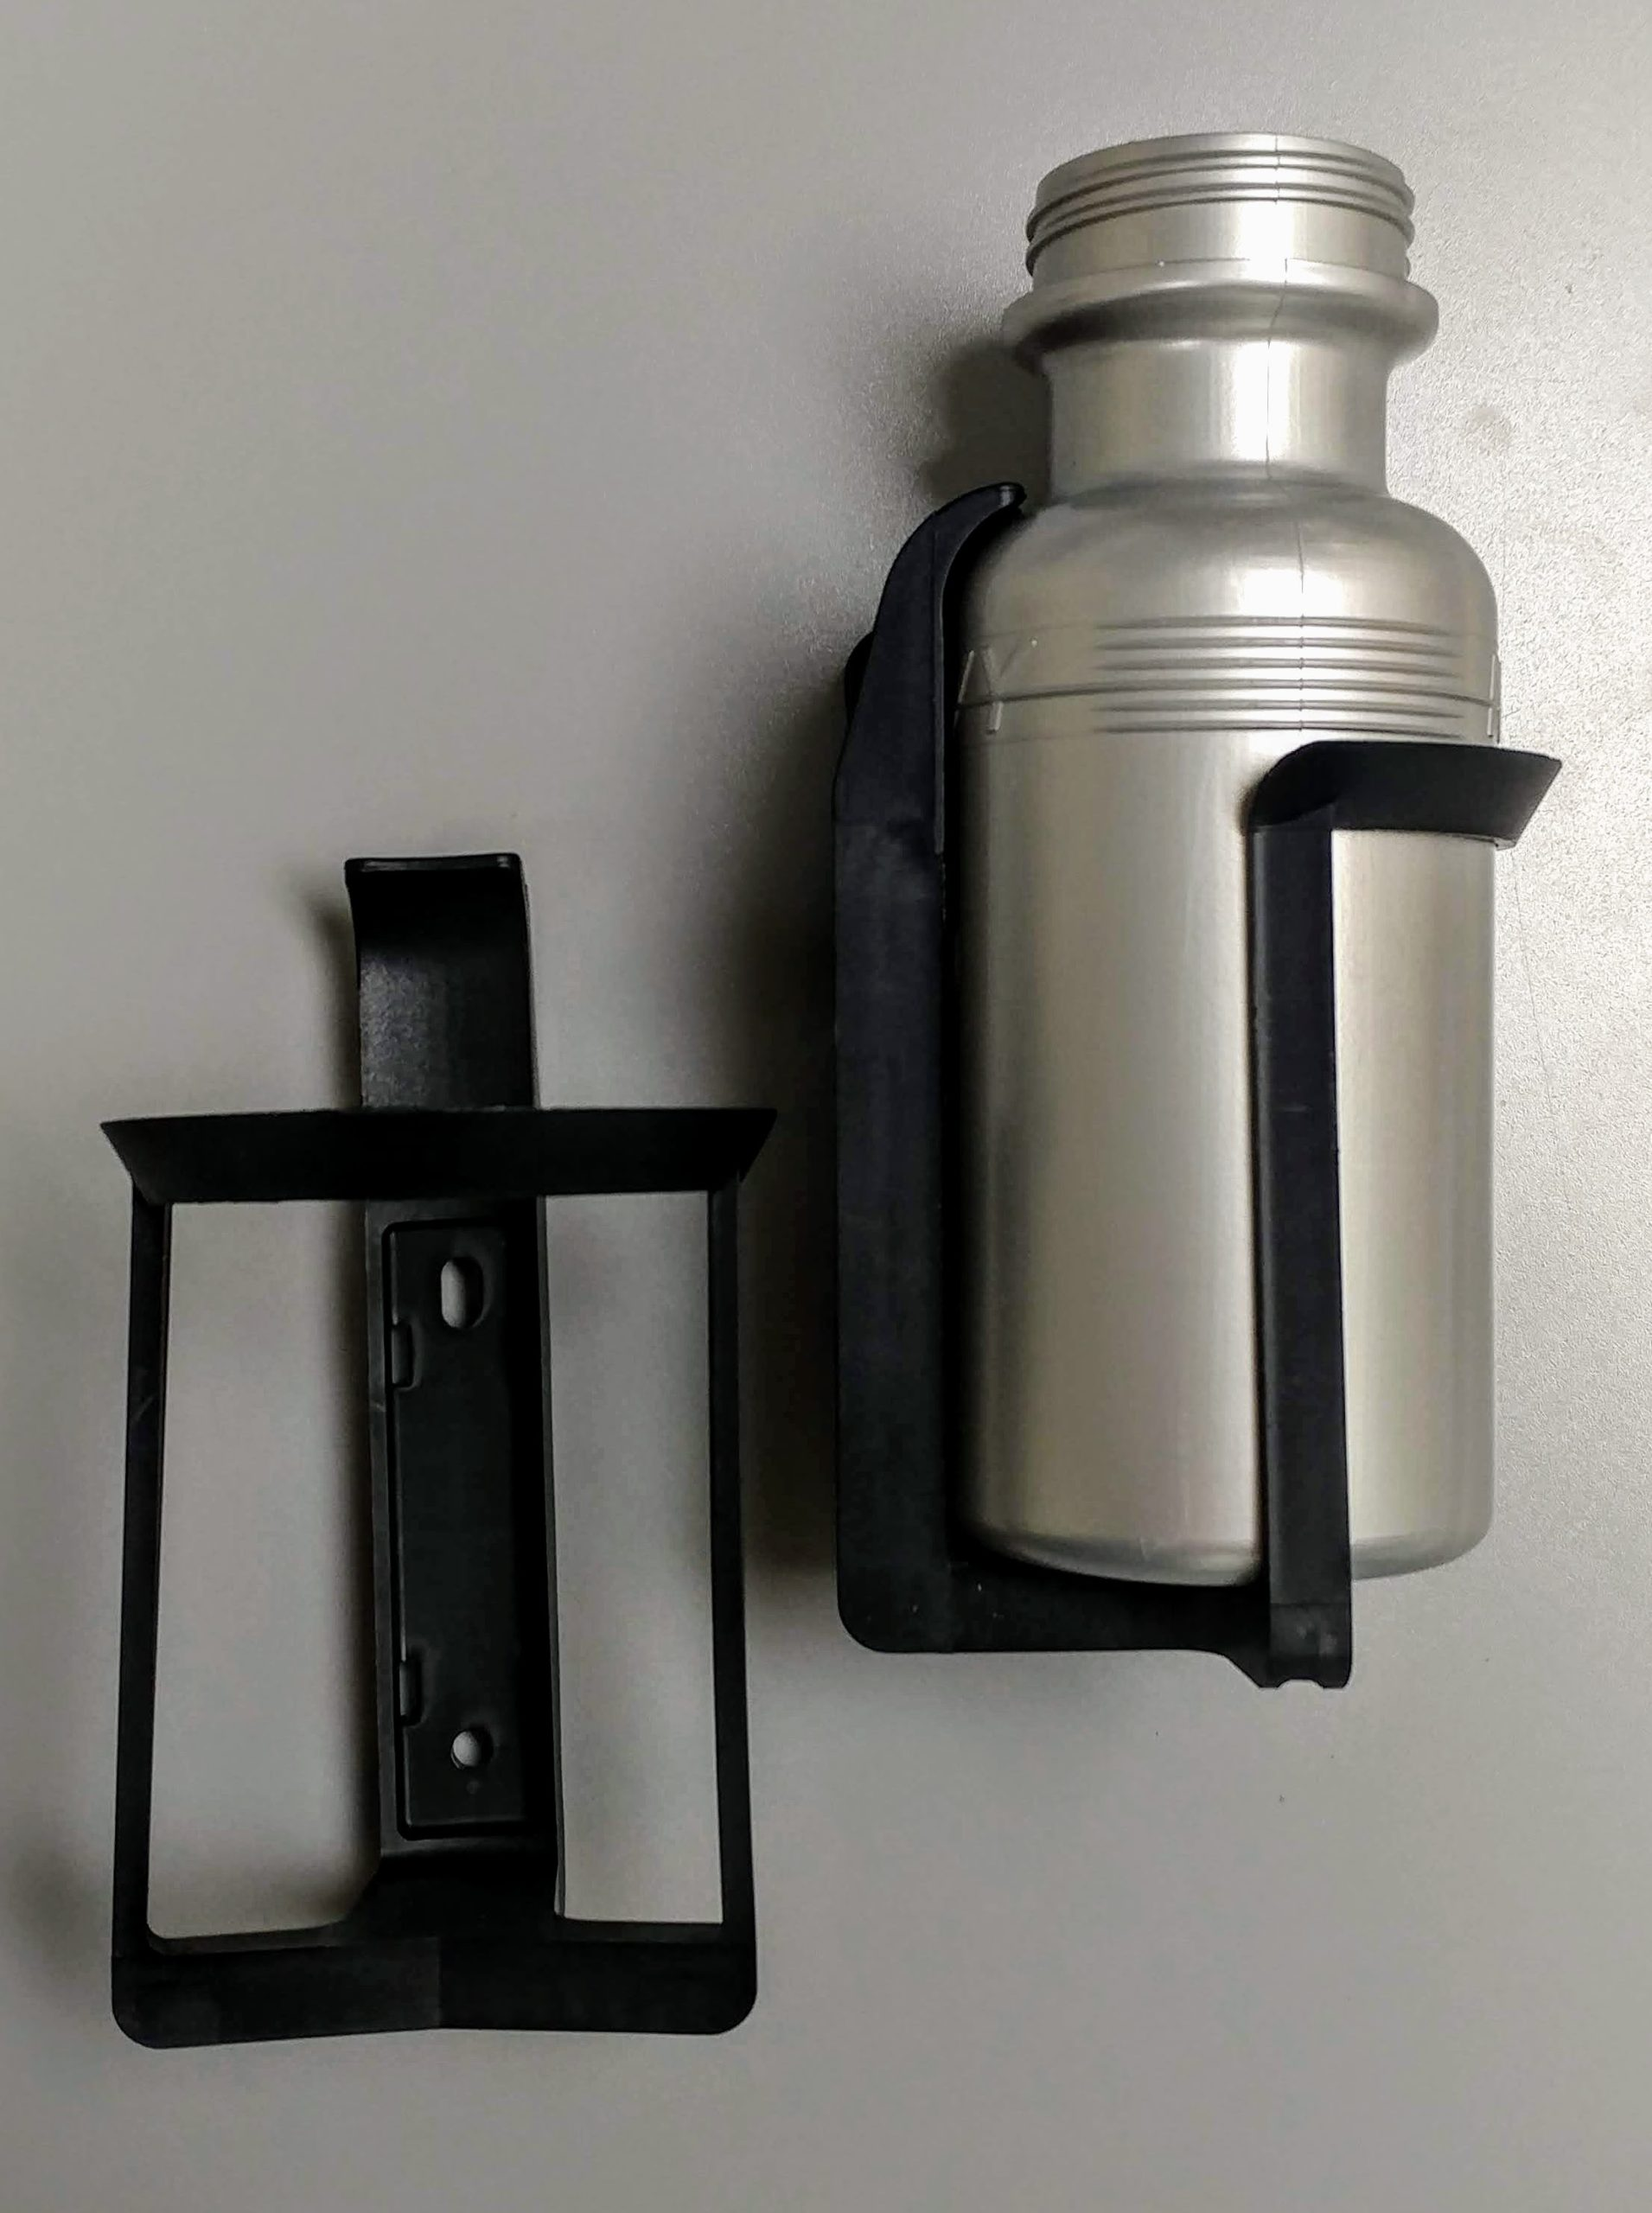 Bicycle Water Bottle Holder, Injected Nylon Image